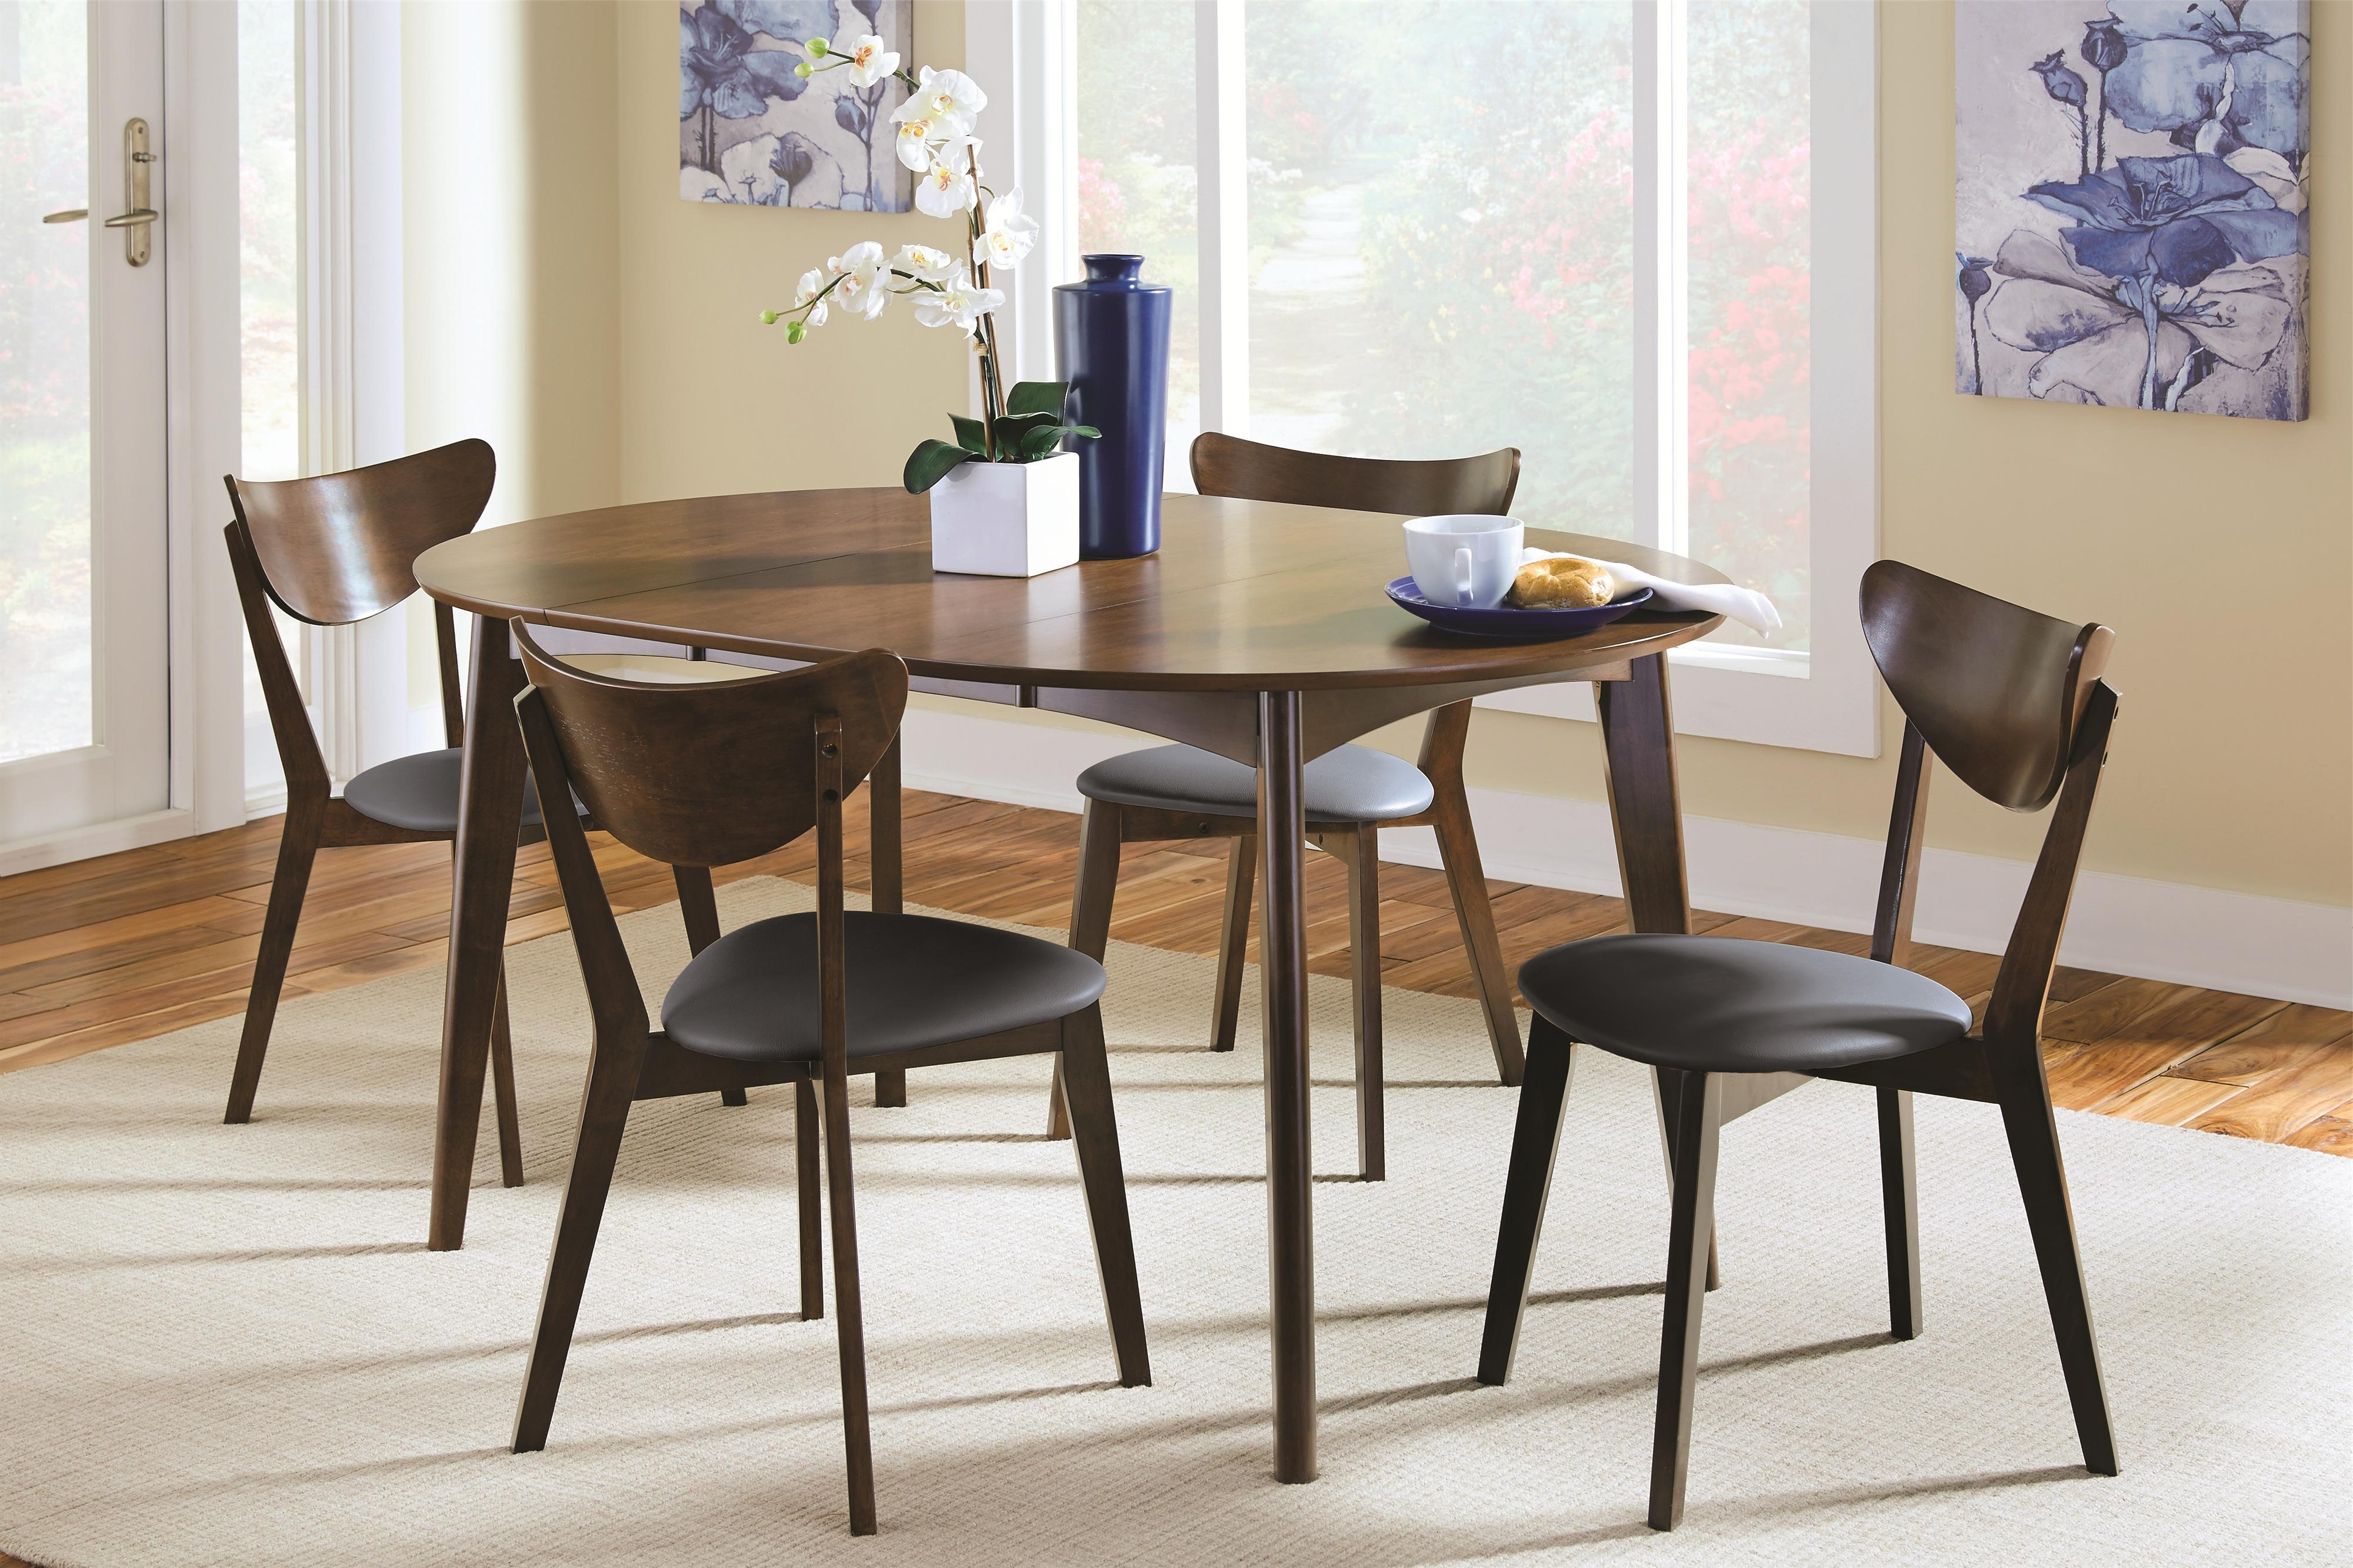 Preferred Coaster Malone Mid Century Modern 5 Piece Solid Wood Dining Set In Modern Dining Sets (View 2 of 25)